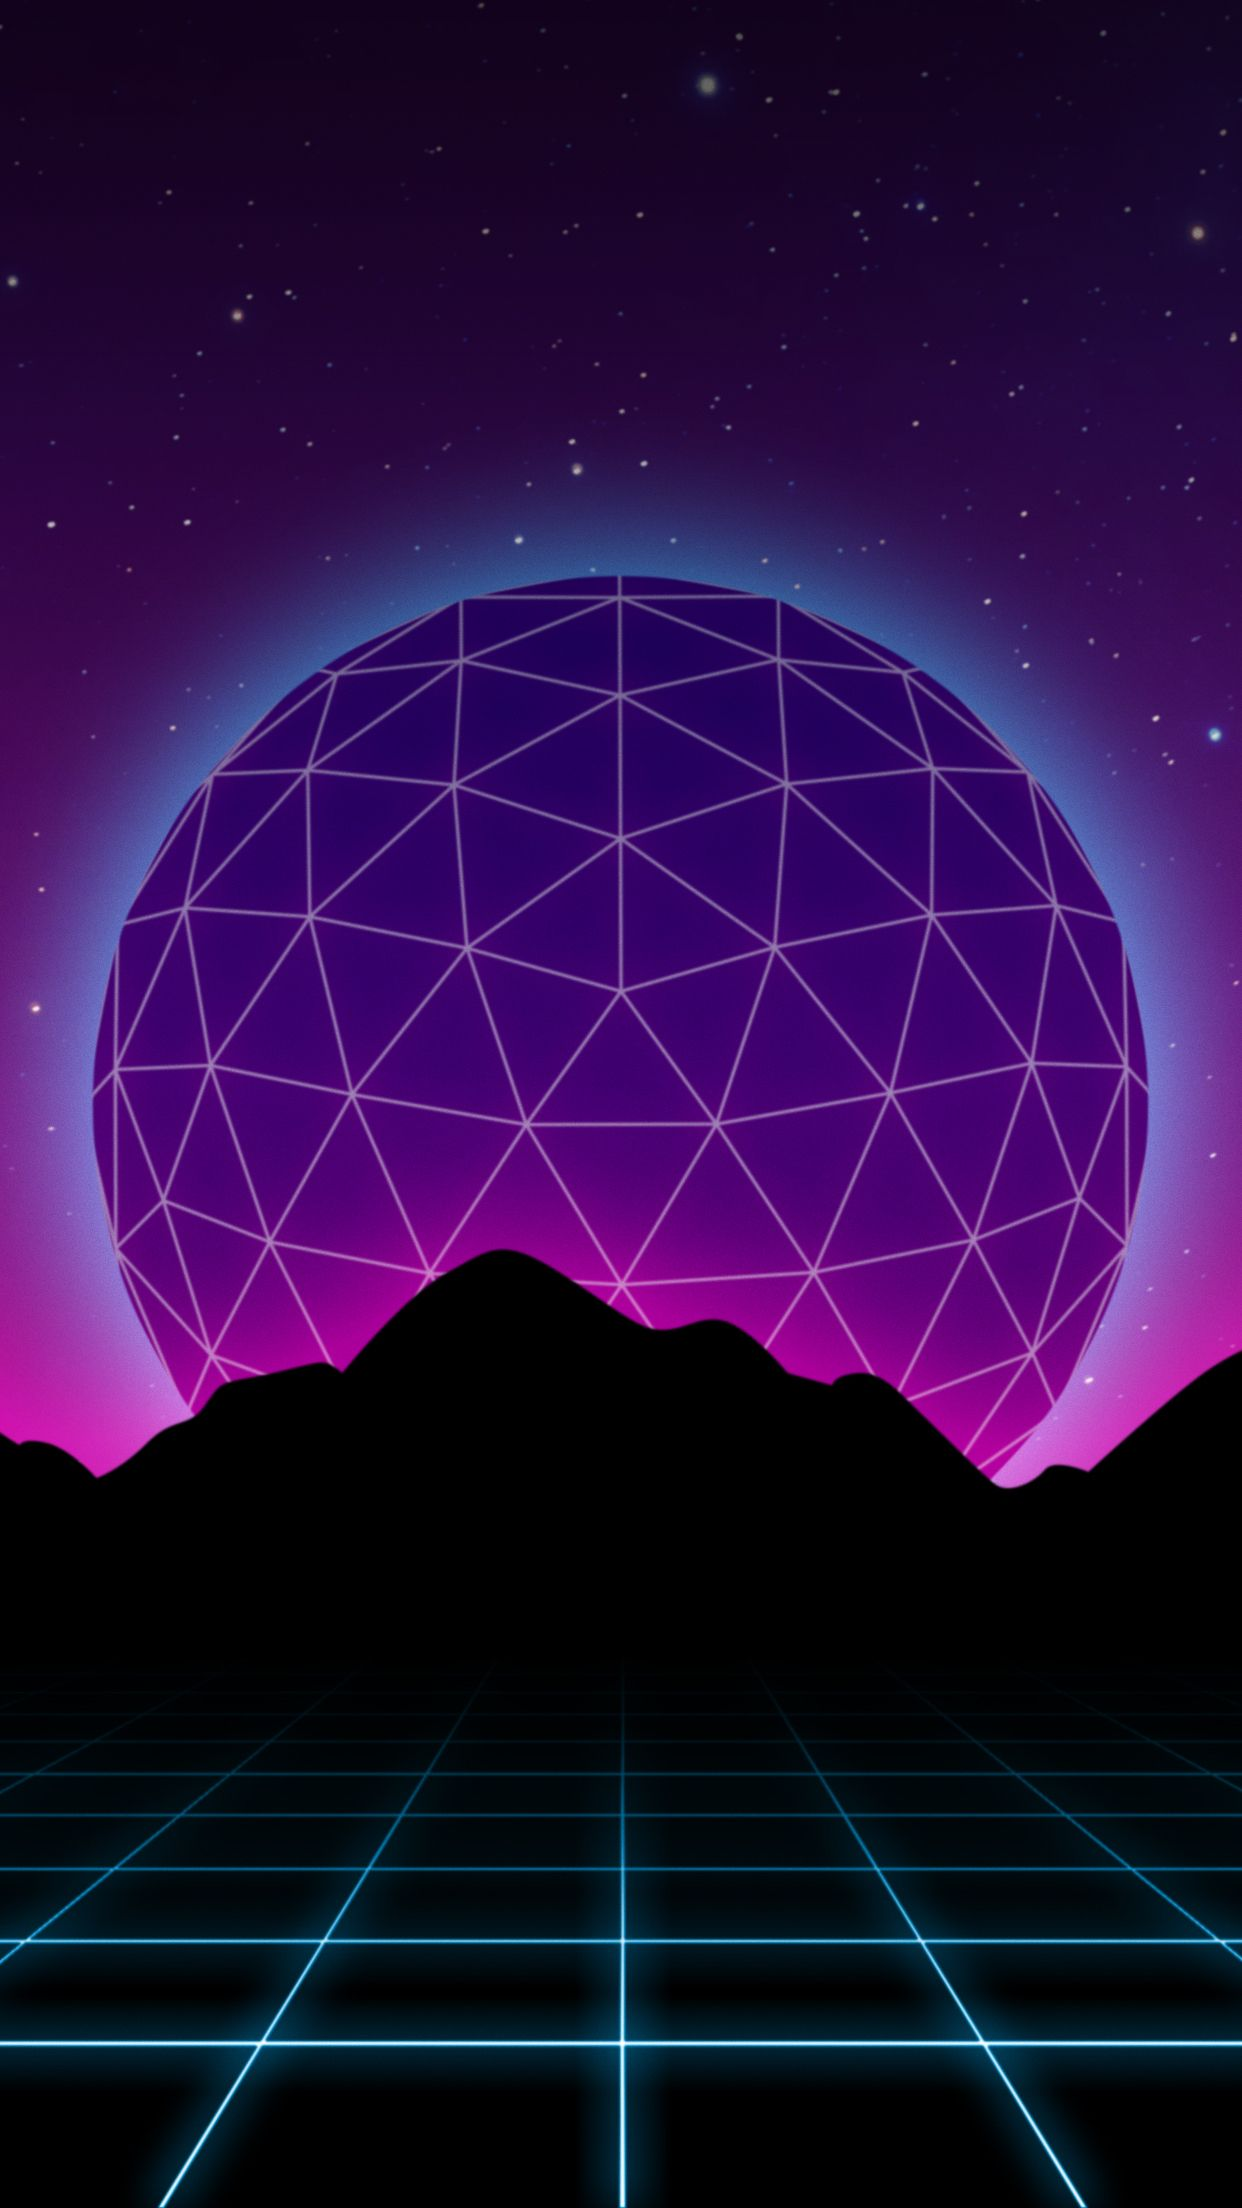 Wallpaper Background Synthwave Retrowave 1242x2208 9 16 Vaporwave Wallpaper Synthwave Retro Futurism